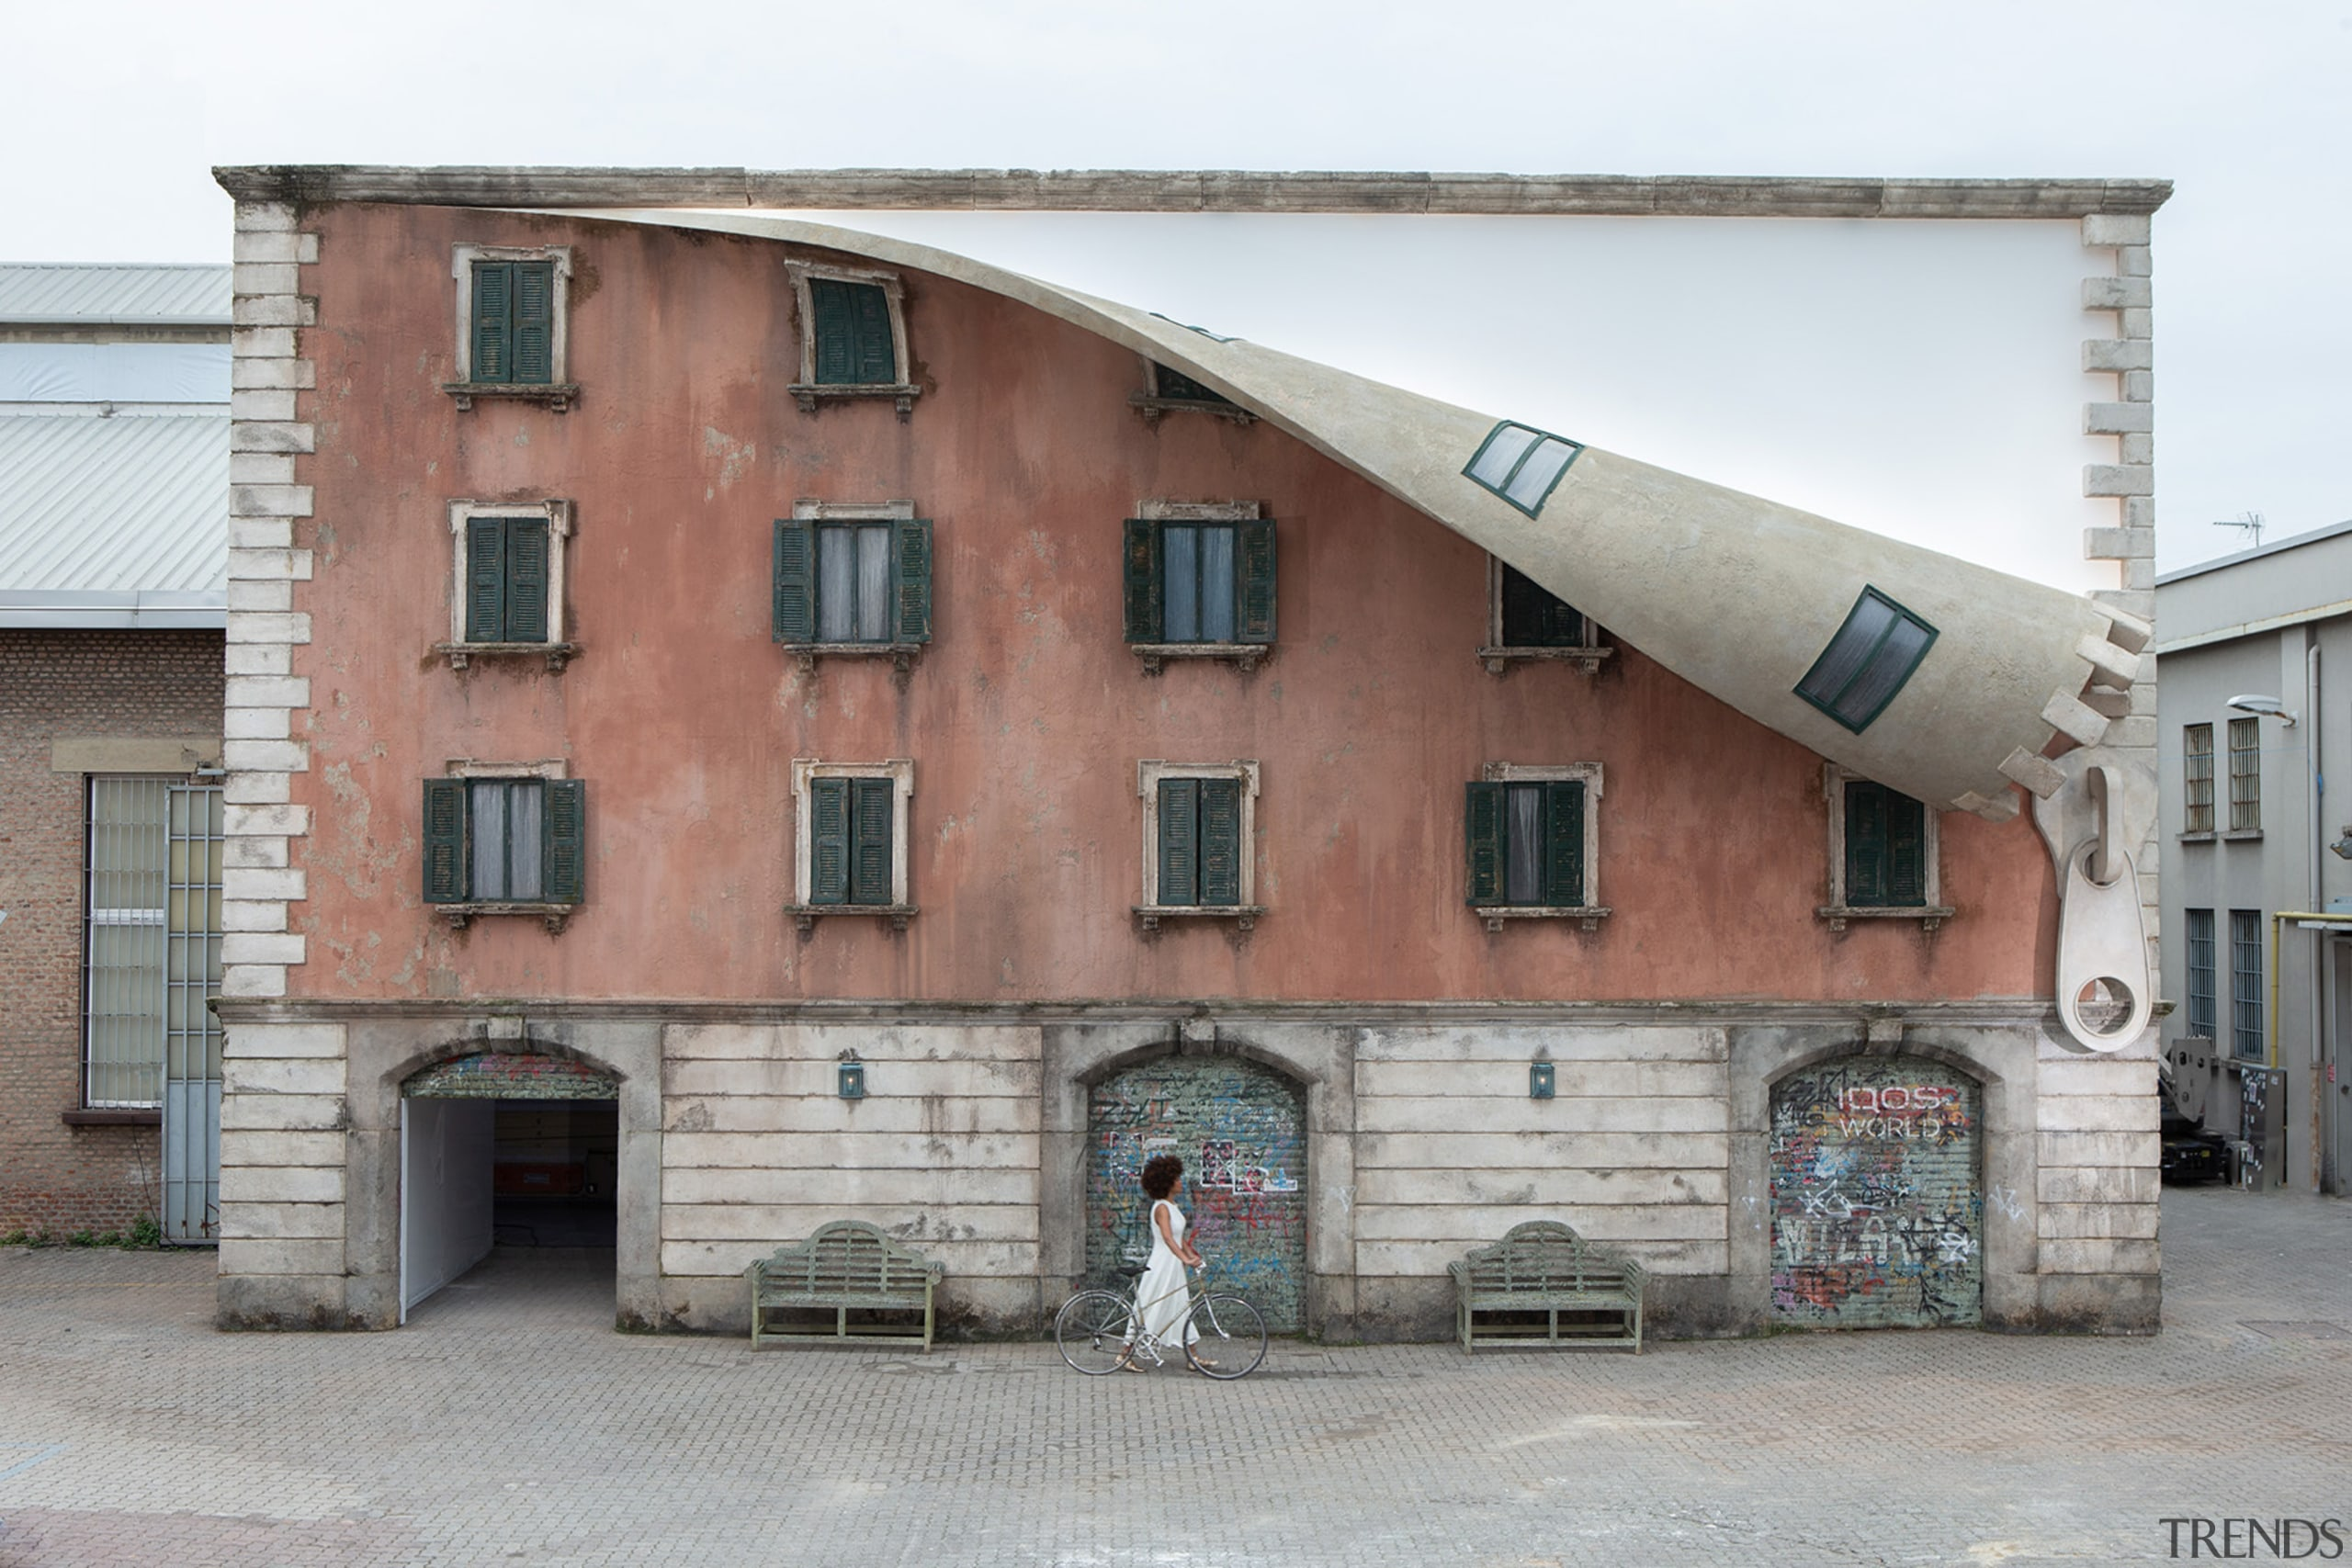 Alex Chinneck – A spoonful of sunrise - architecture, building, facade, house, neighbourhood, property, real estate, gray, white